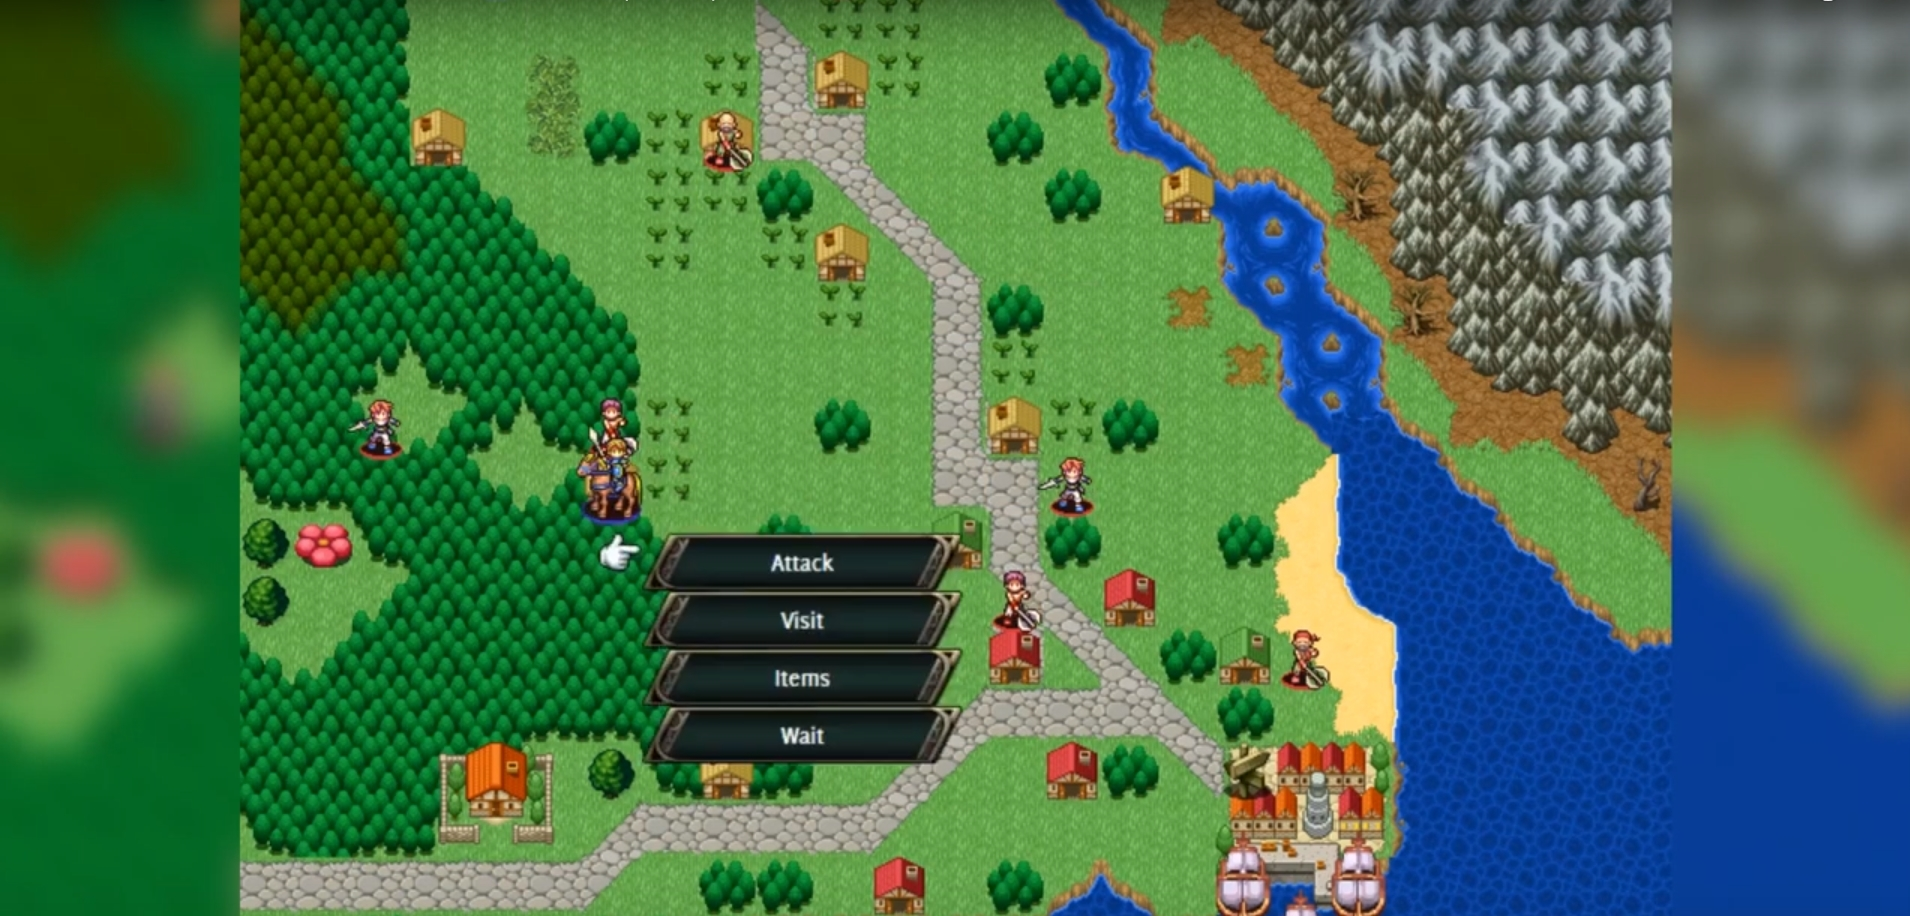 Vestaria Saga, a Tactics JRPG from the Minds Behind Fire Emblem, Has Released on Steam